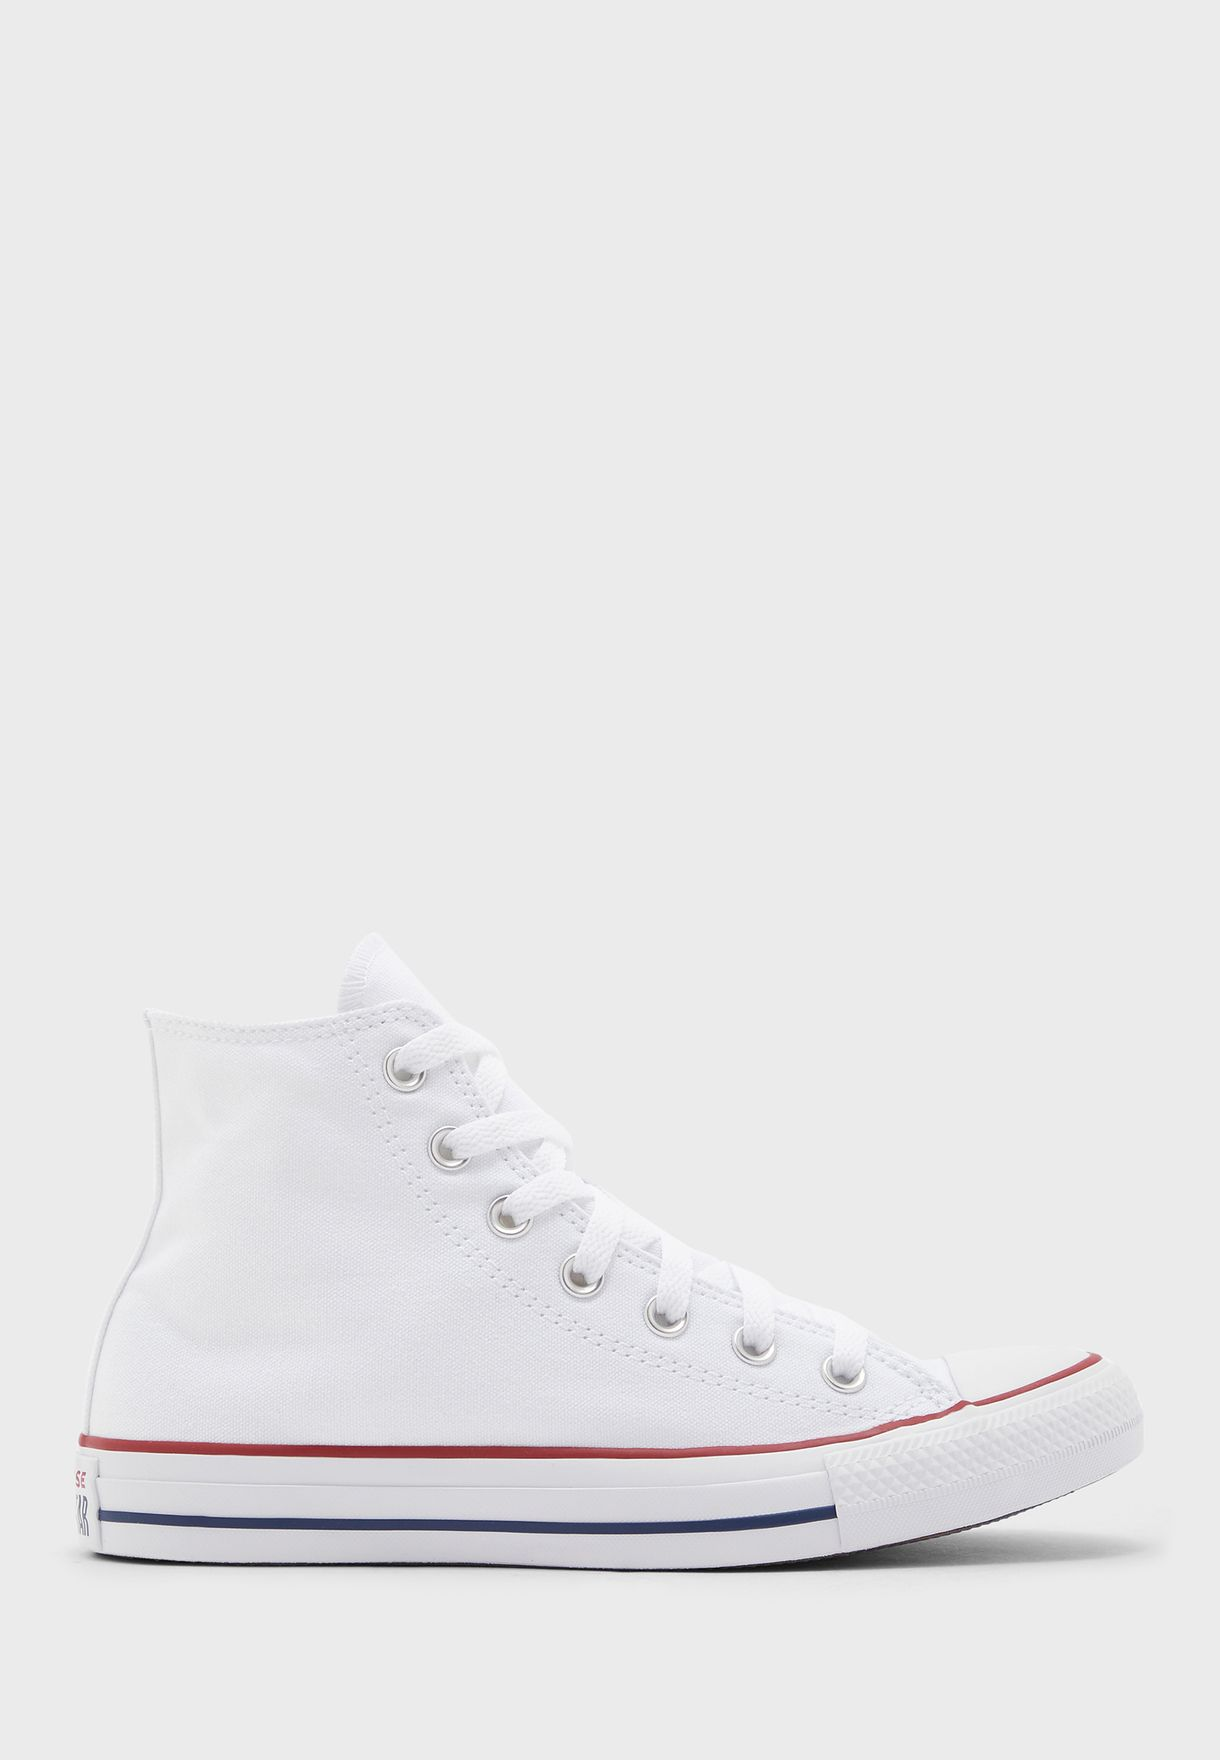 a1b134ddf1be Shop Converse white Chuck Taylor All Star M7650-102 for Women in ...